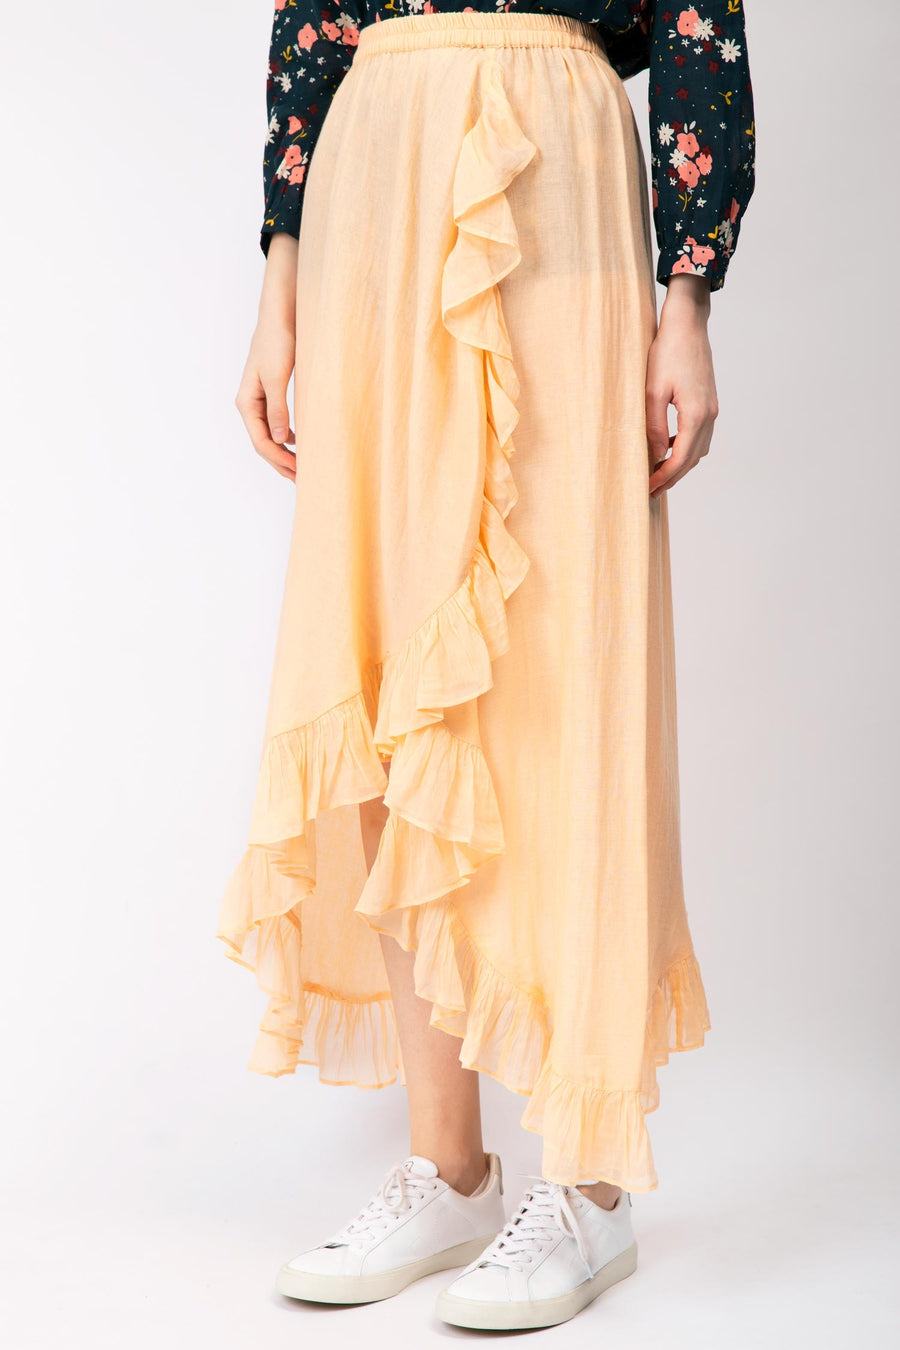 Ruffled Cotton Skirt